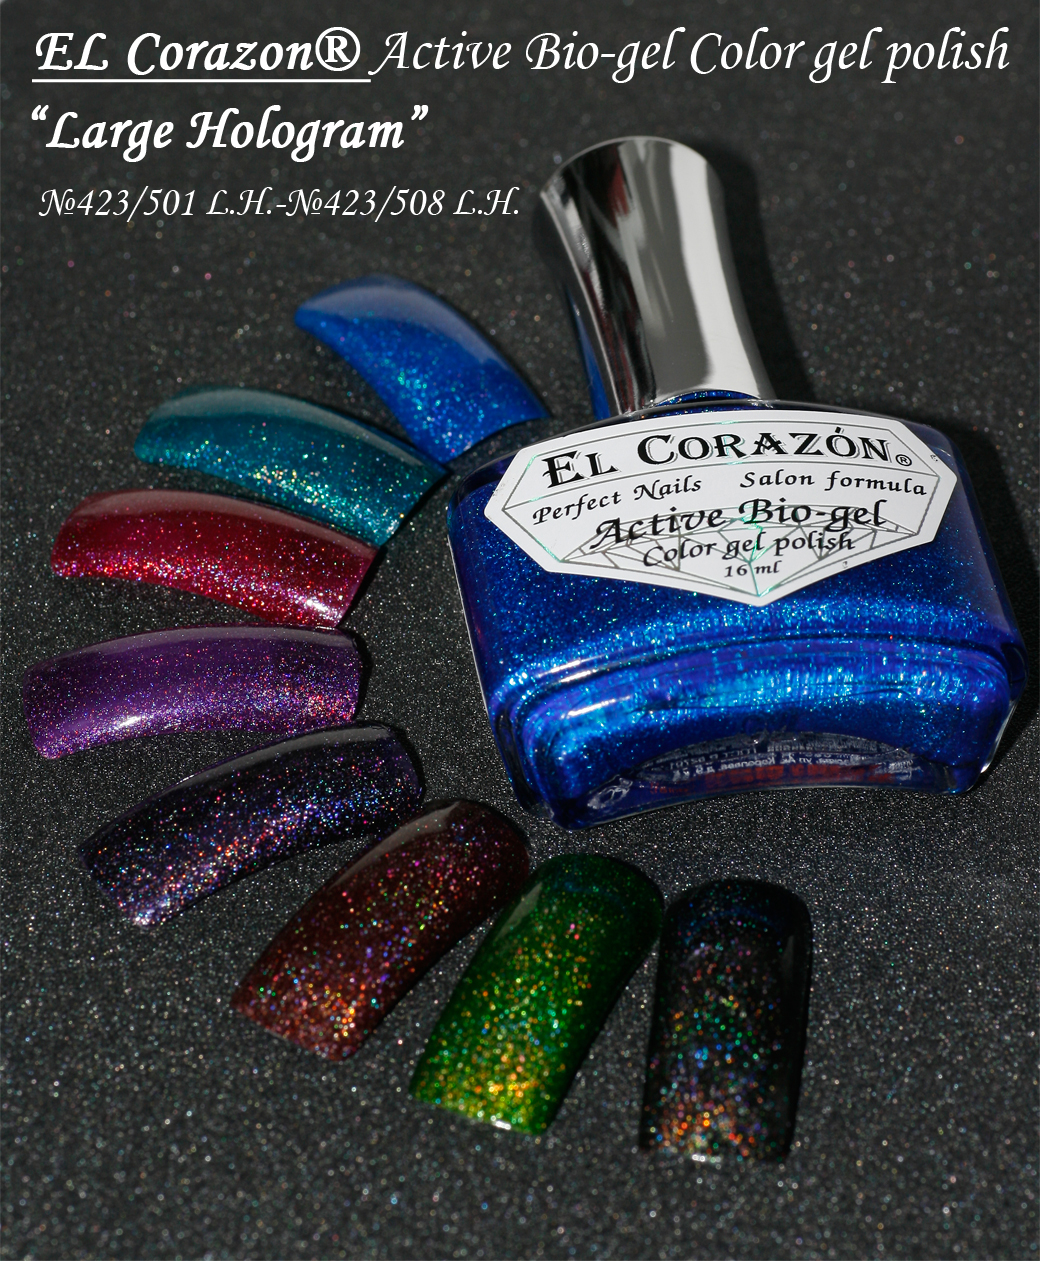 EL Corazon Active Bio-gel Color gel polish Large Hologram